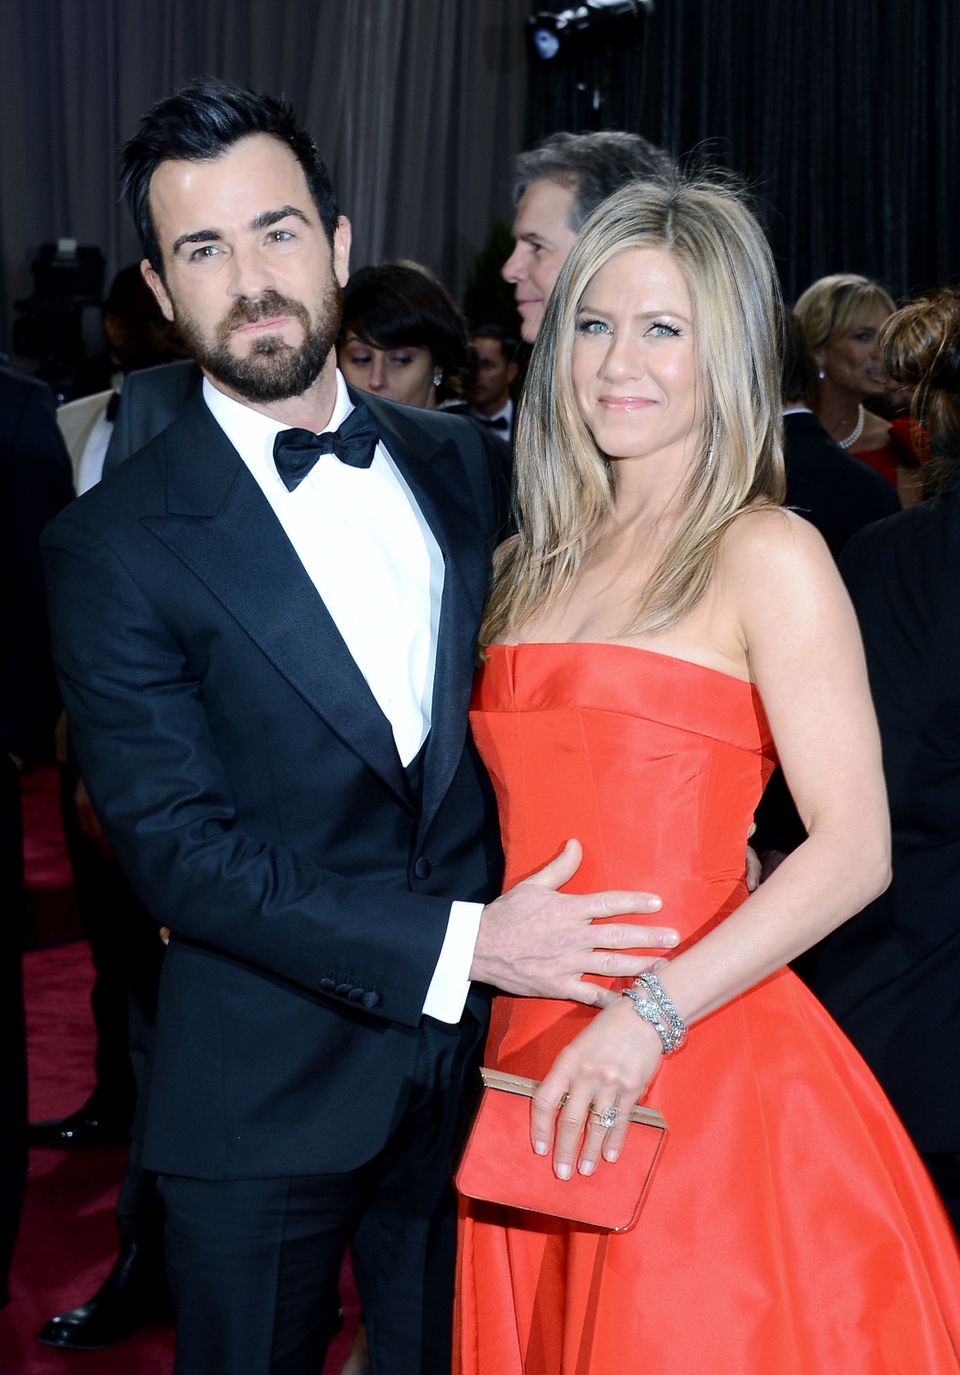 Actors Justin Theroux and Jennifer Aniston arrive at the Oscars at Hollywood & Highland Center on February 24, 2013 in Ho